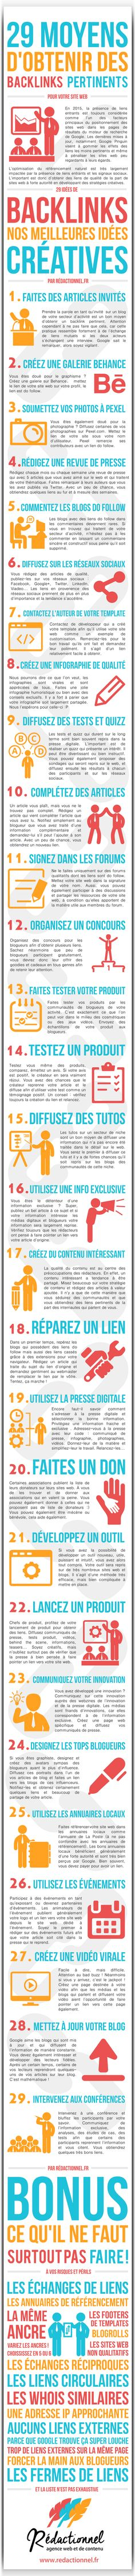 #backlinks .... heu... bof bof en fait #seo